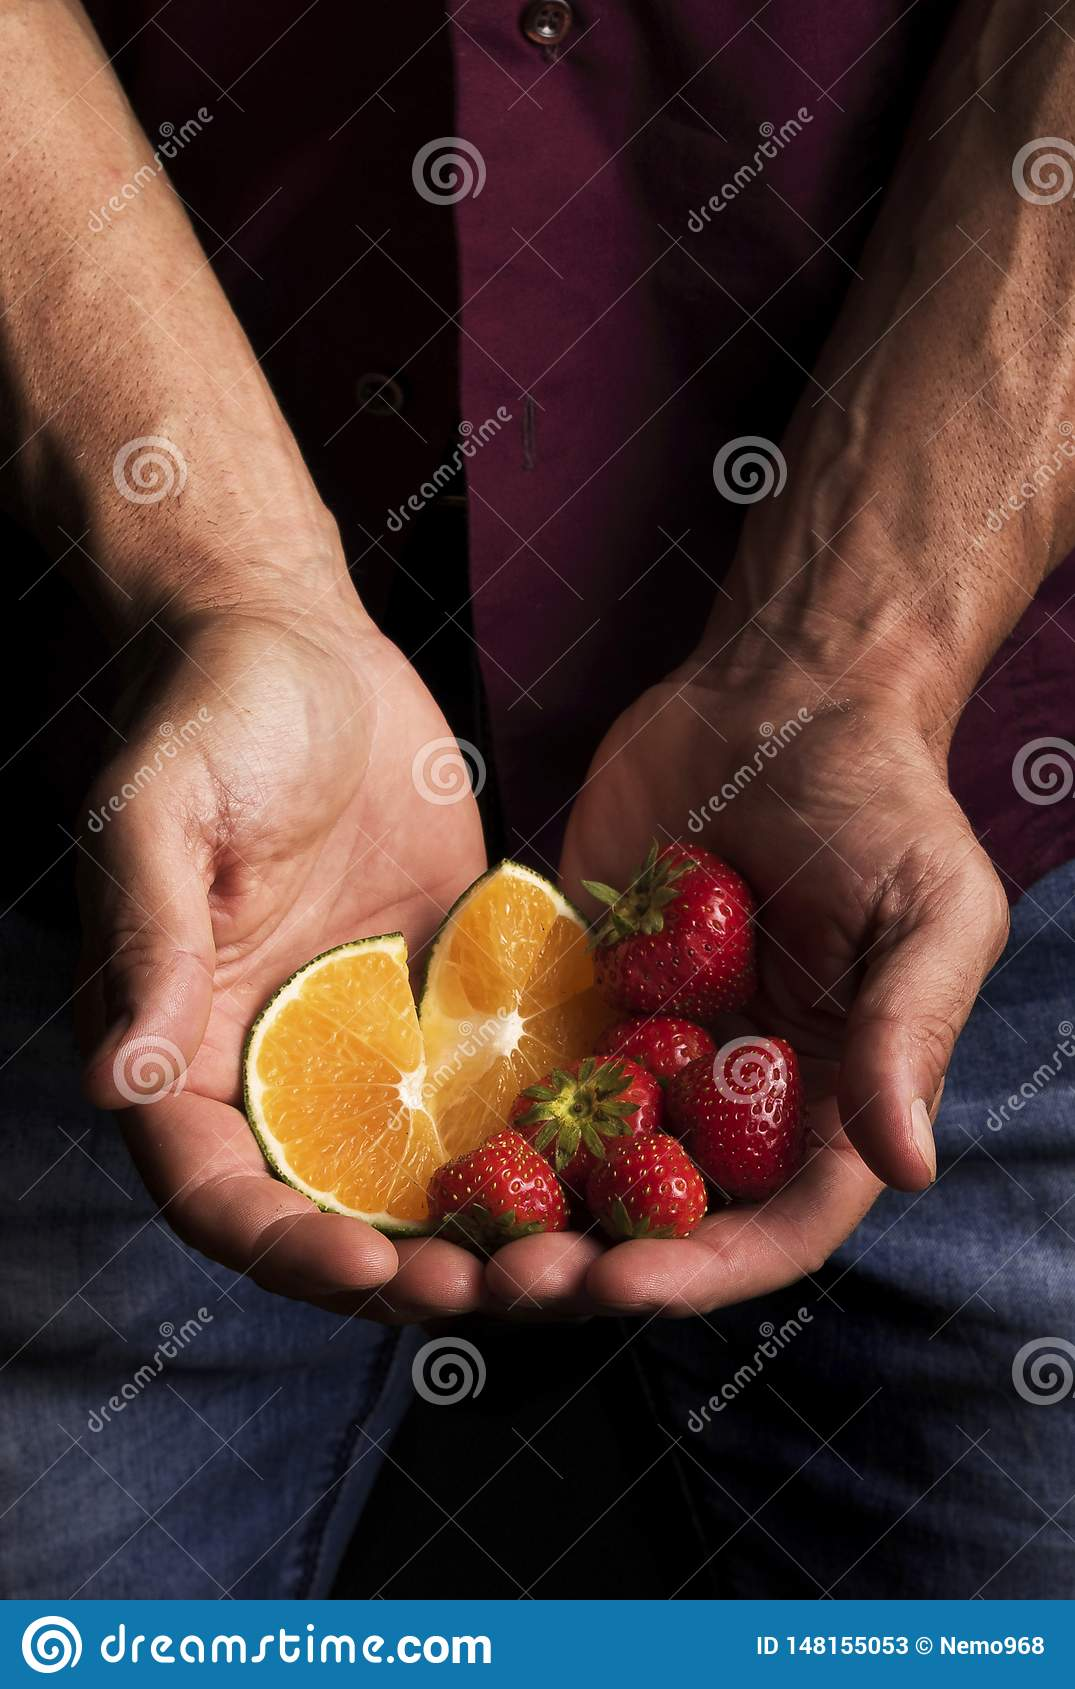 Hands of a man holding fruit